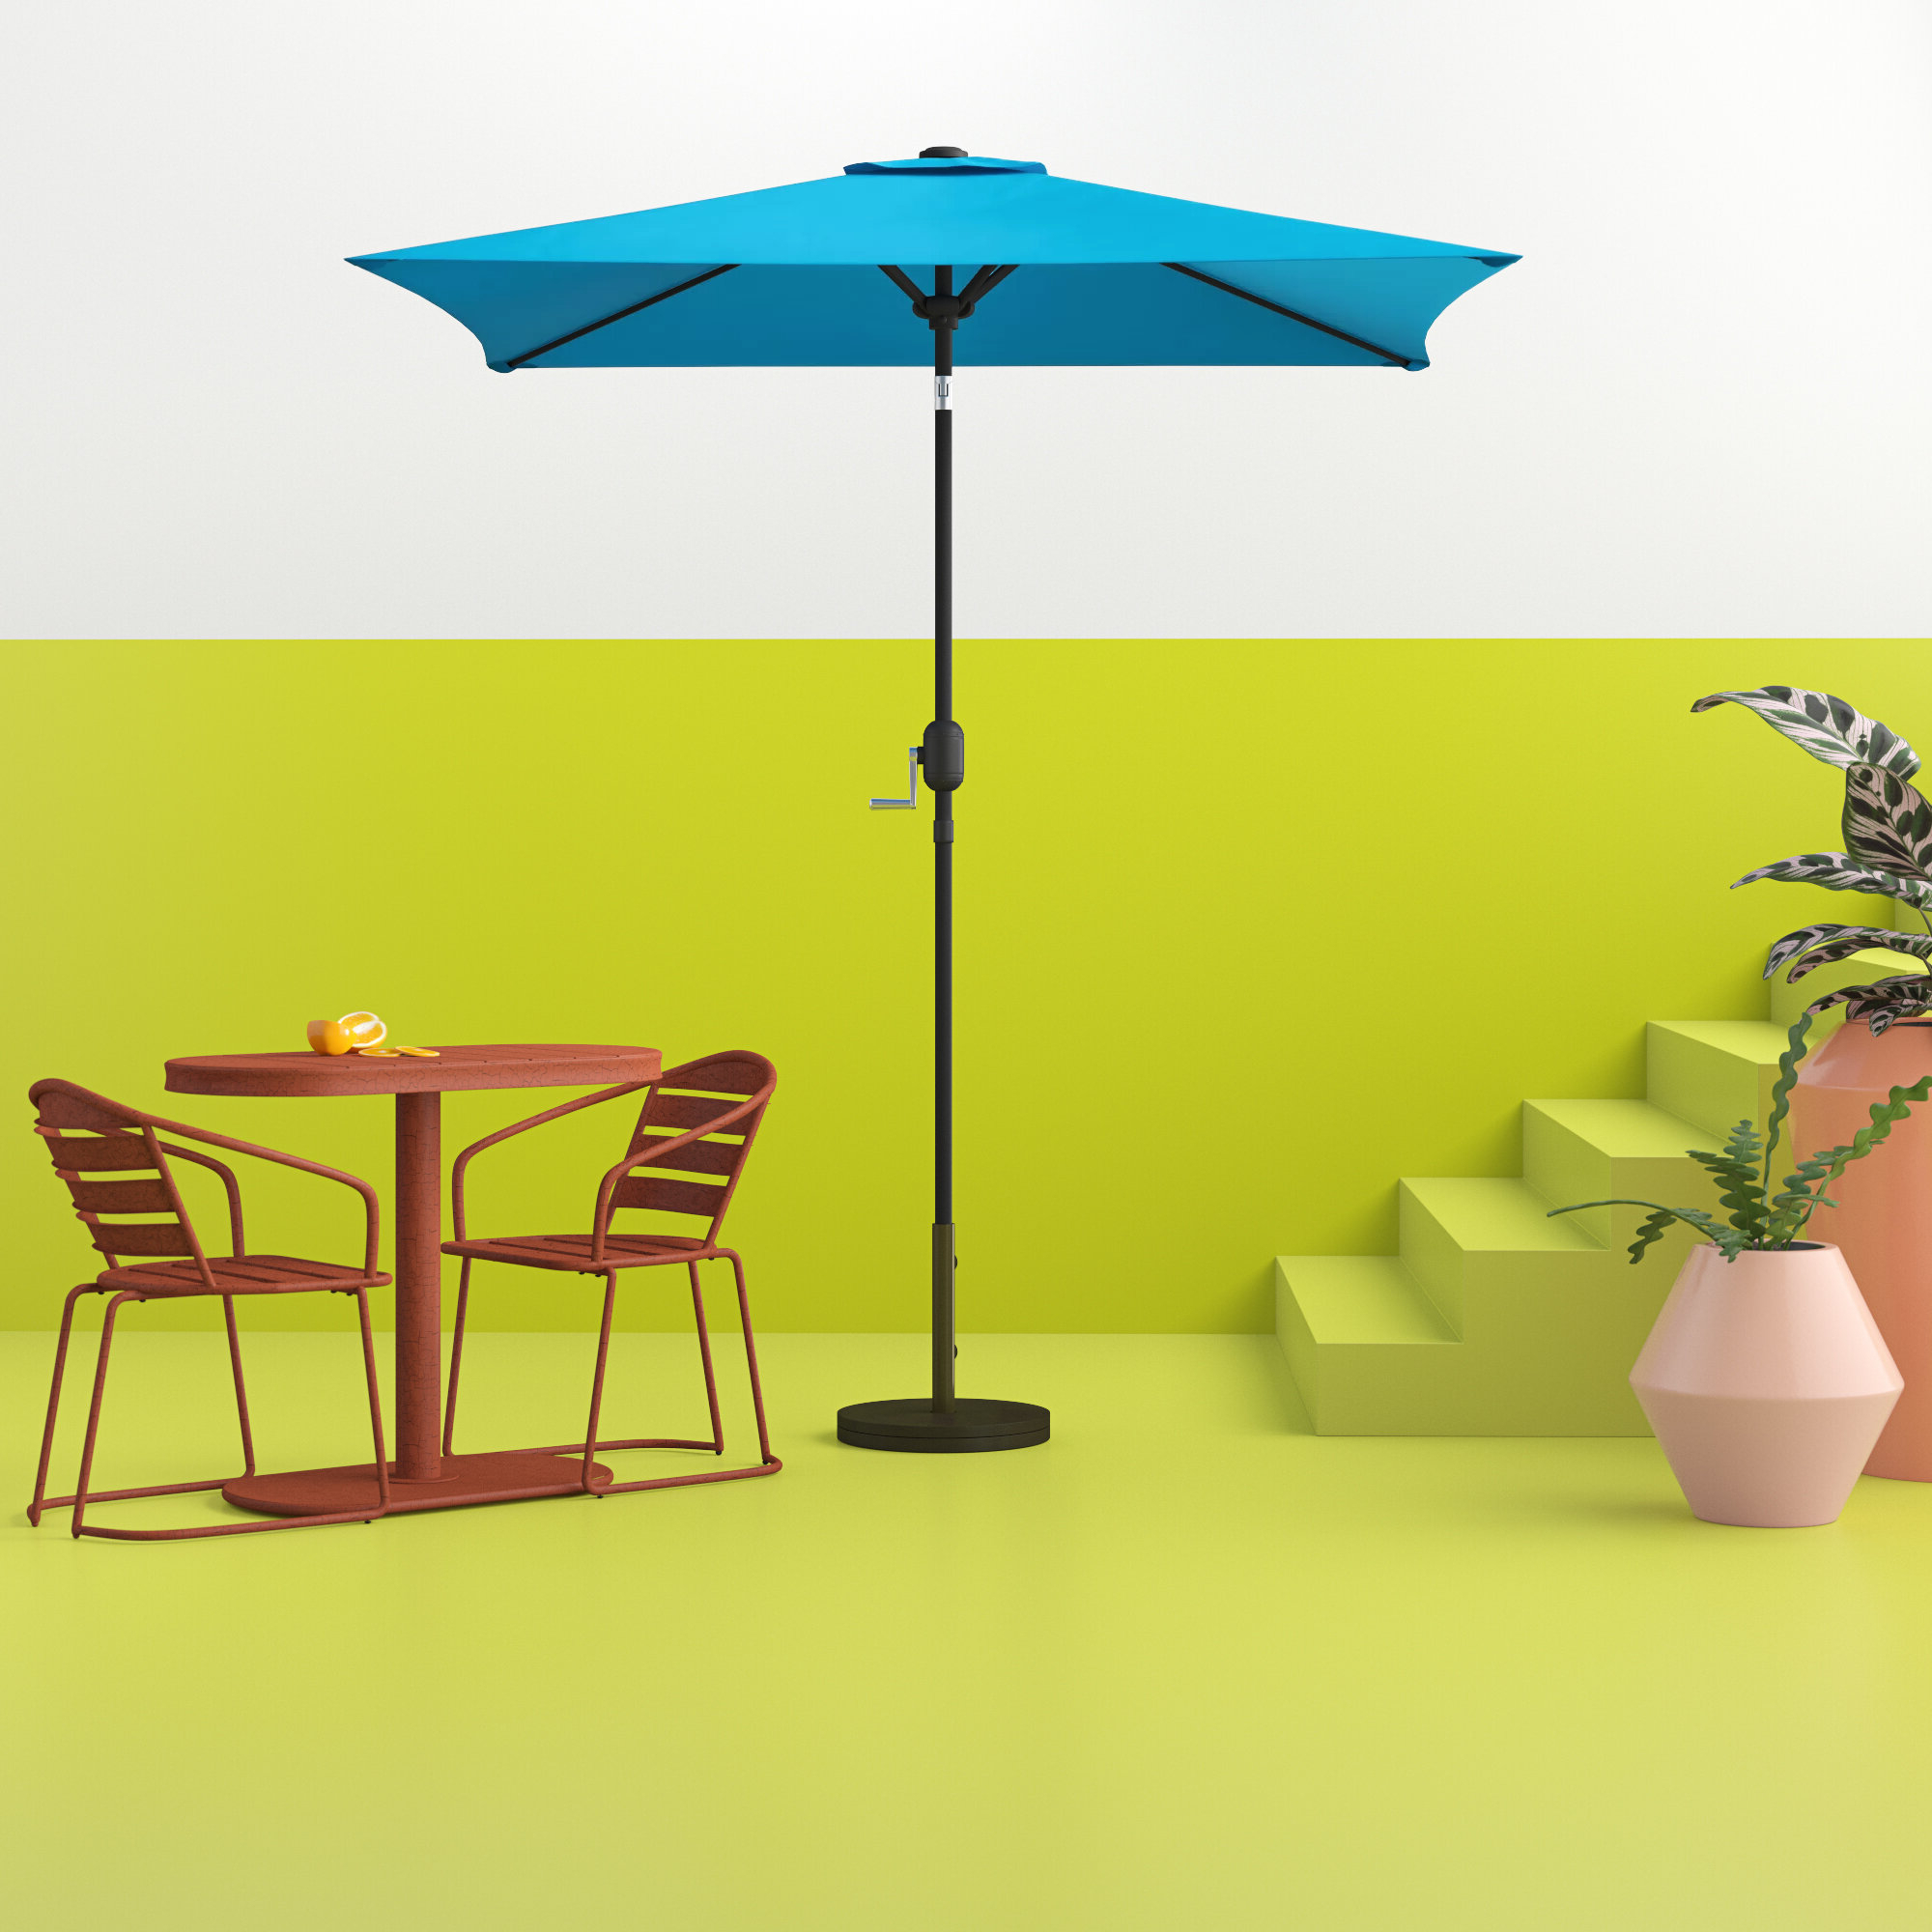 Best And Newest Bradford Patio Market Umbrellas With Bradford Patio  (View 4 of 20)